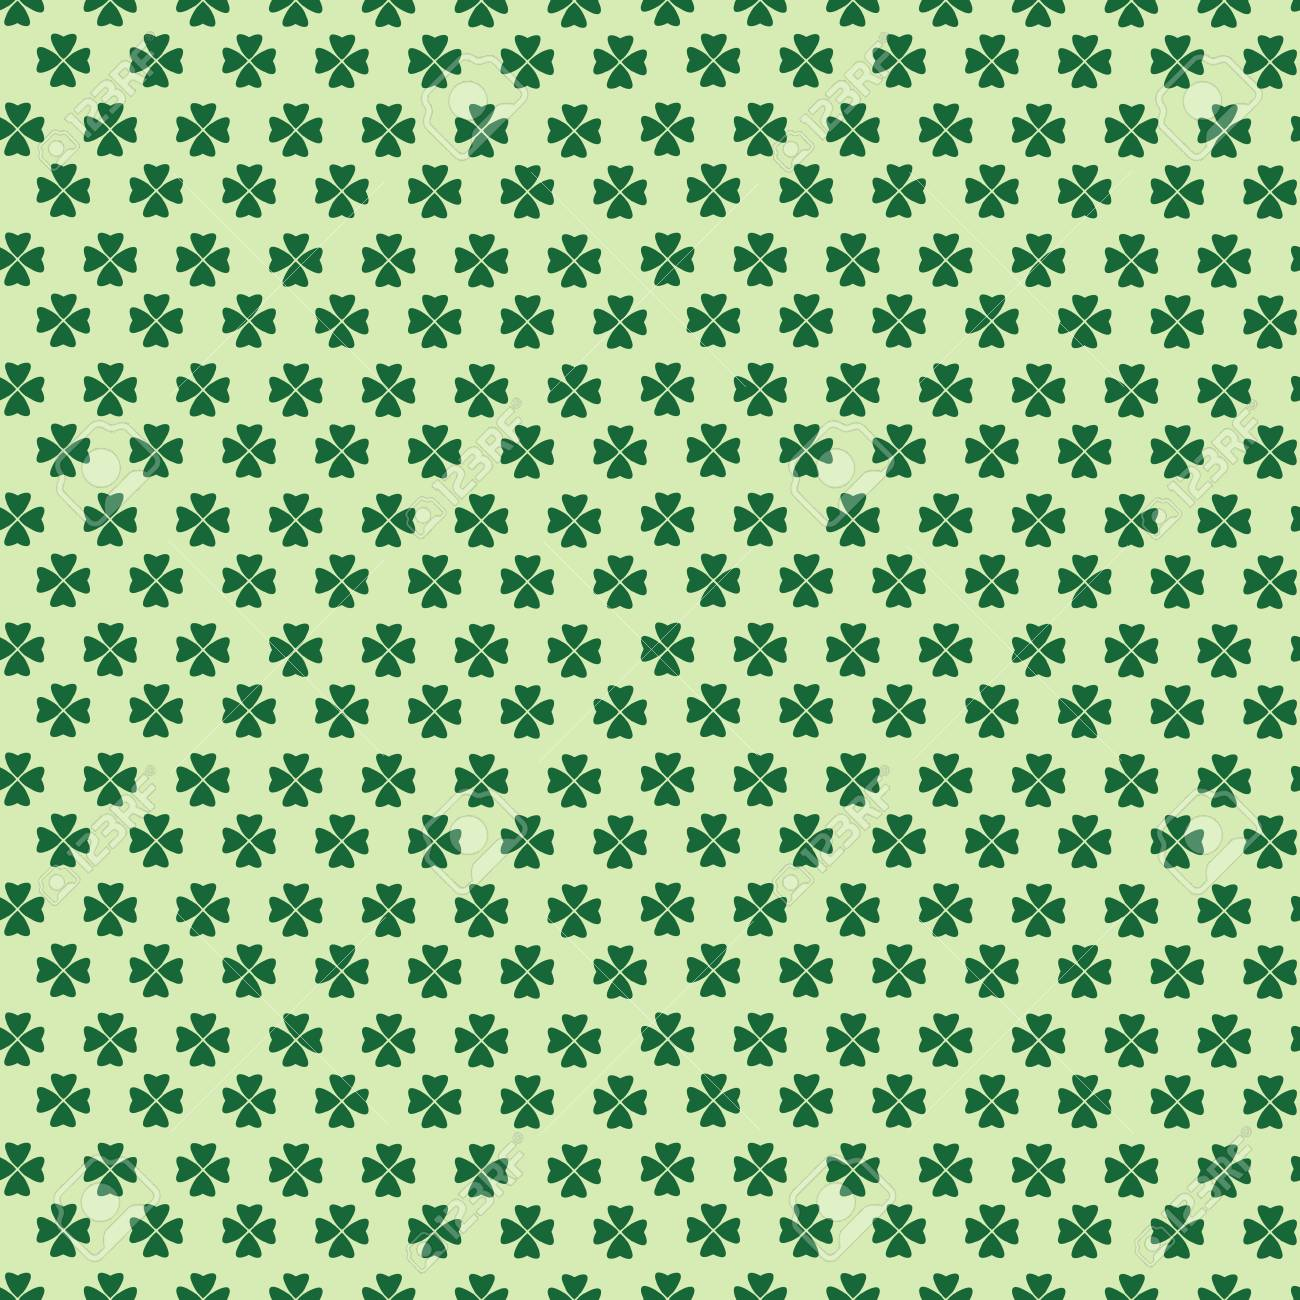 Free Download Cute Background For St Patricks Day Seamless Pattern